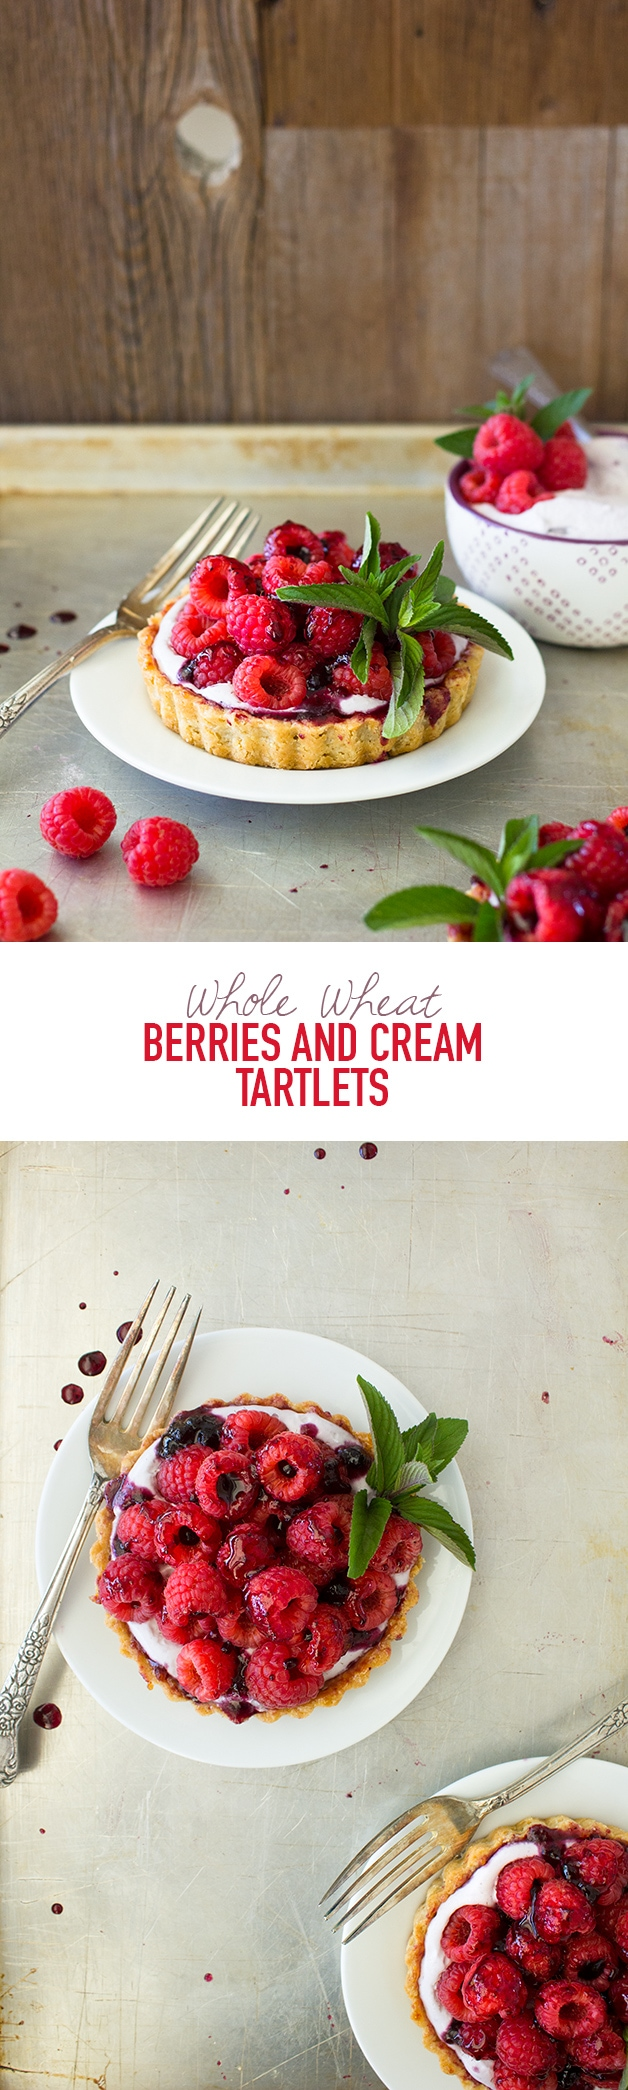 Whole Wheat Berries and Cream Tartlets | Mini tarts with a light, shortbread-like crust, filled with sweet berry whipped cream and topped with plenty of fresh, juicy berries. | www.brighteyedbaker.com